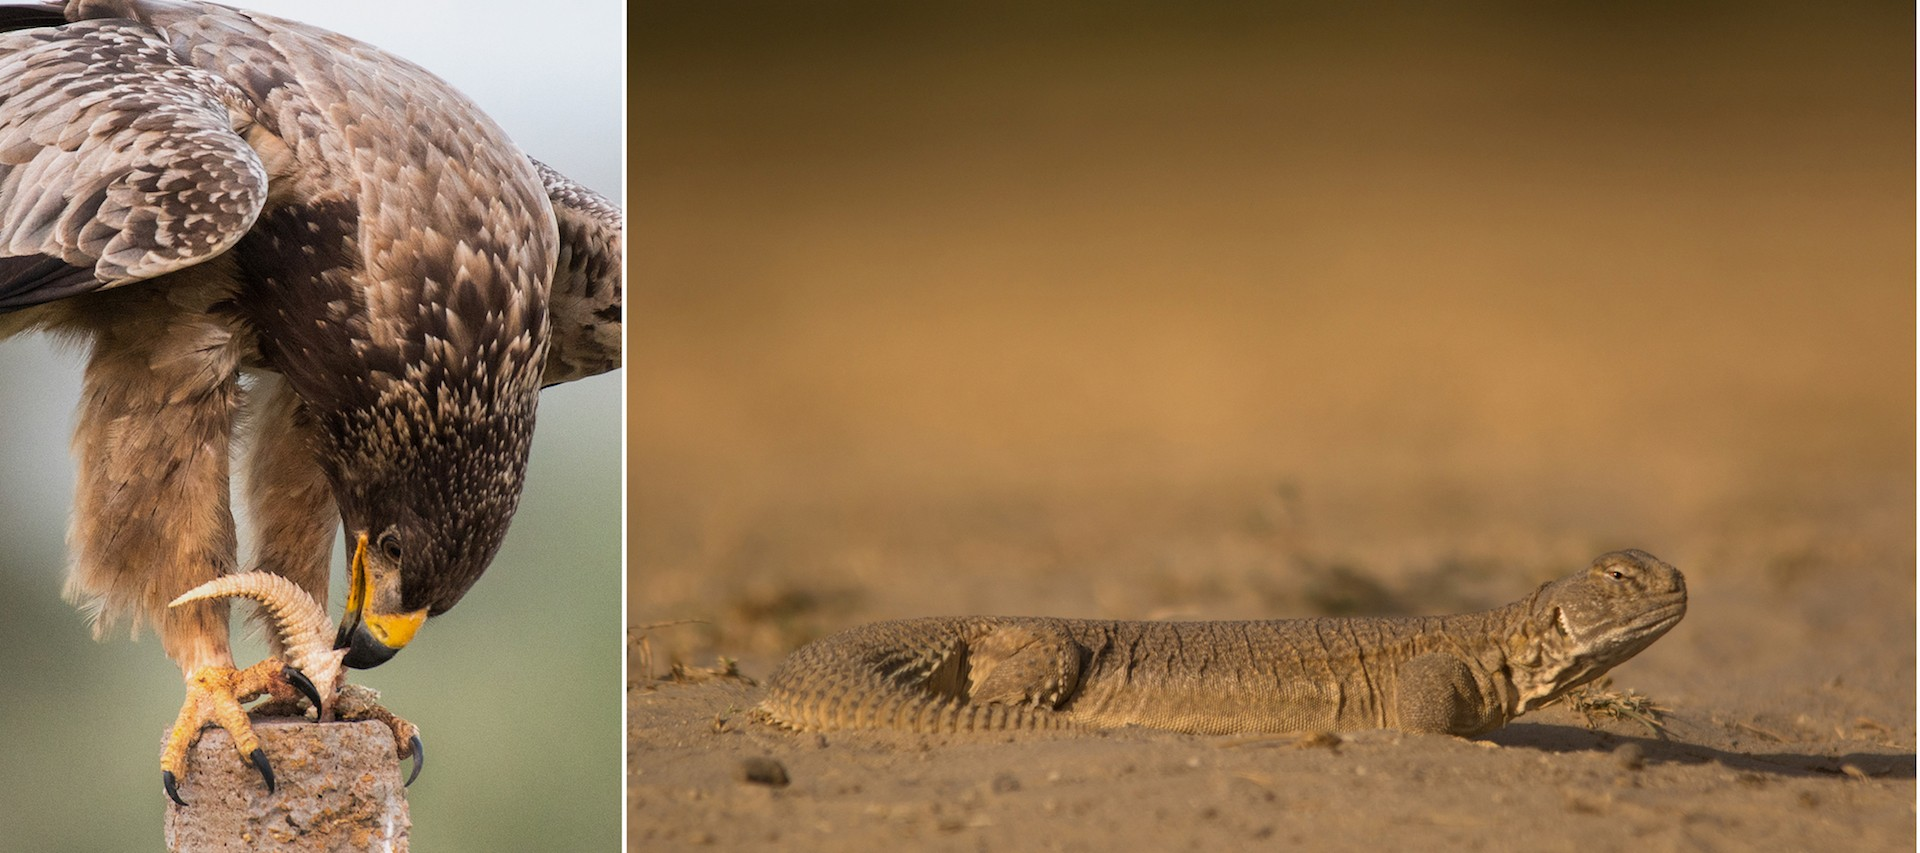 Birds such as the laggar falcon, booted eagle, and tawny eagle (left) are predators of the spiny-tailed lizard (right).